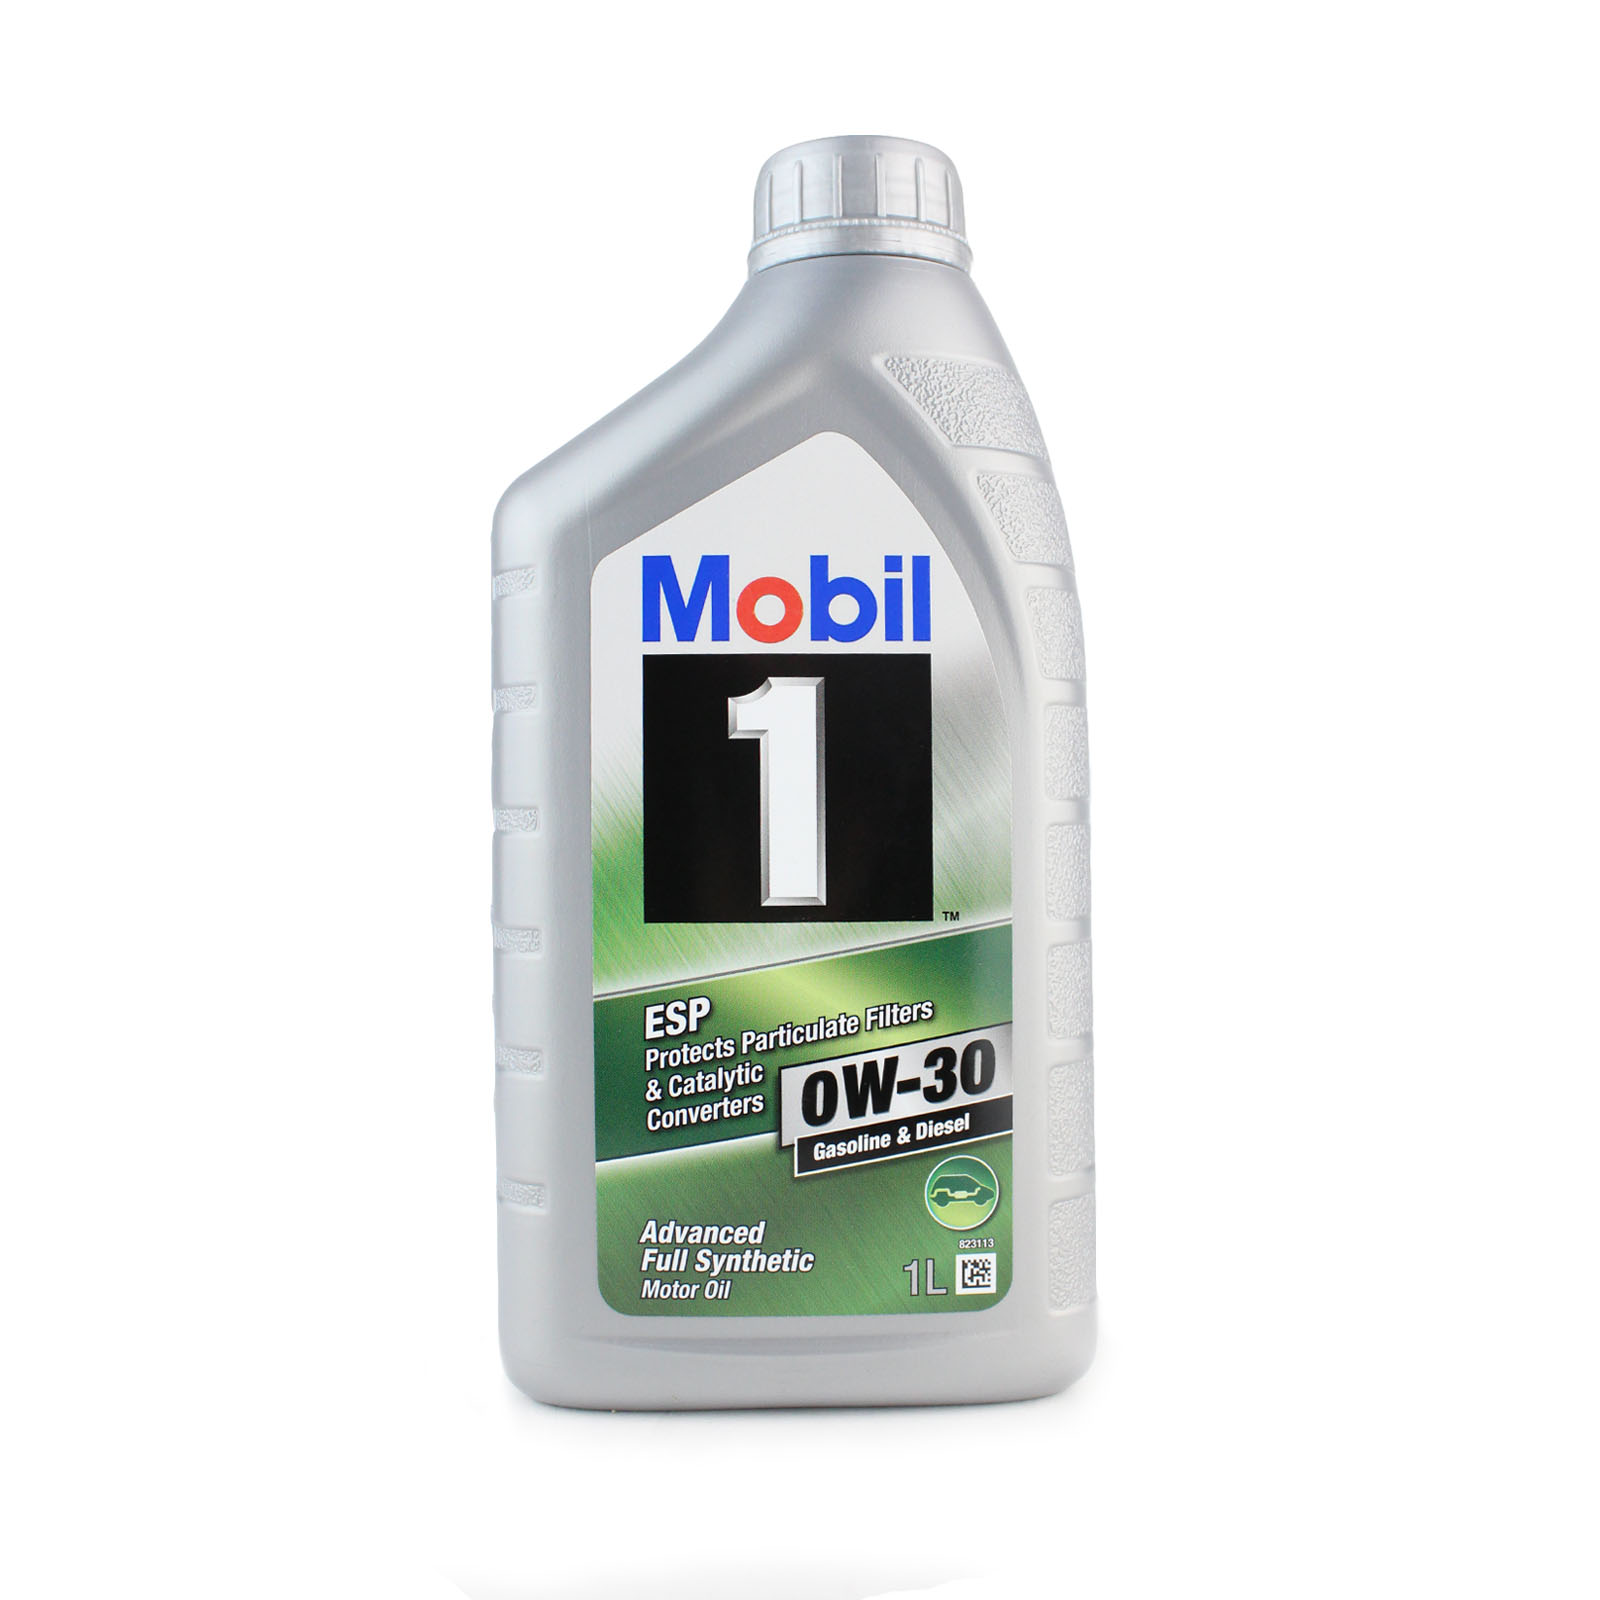 1 Litre Mobil 1 Esp 0w30 Fully Synthetic Engine Motor Oil